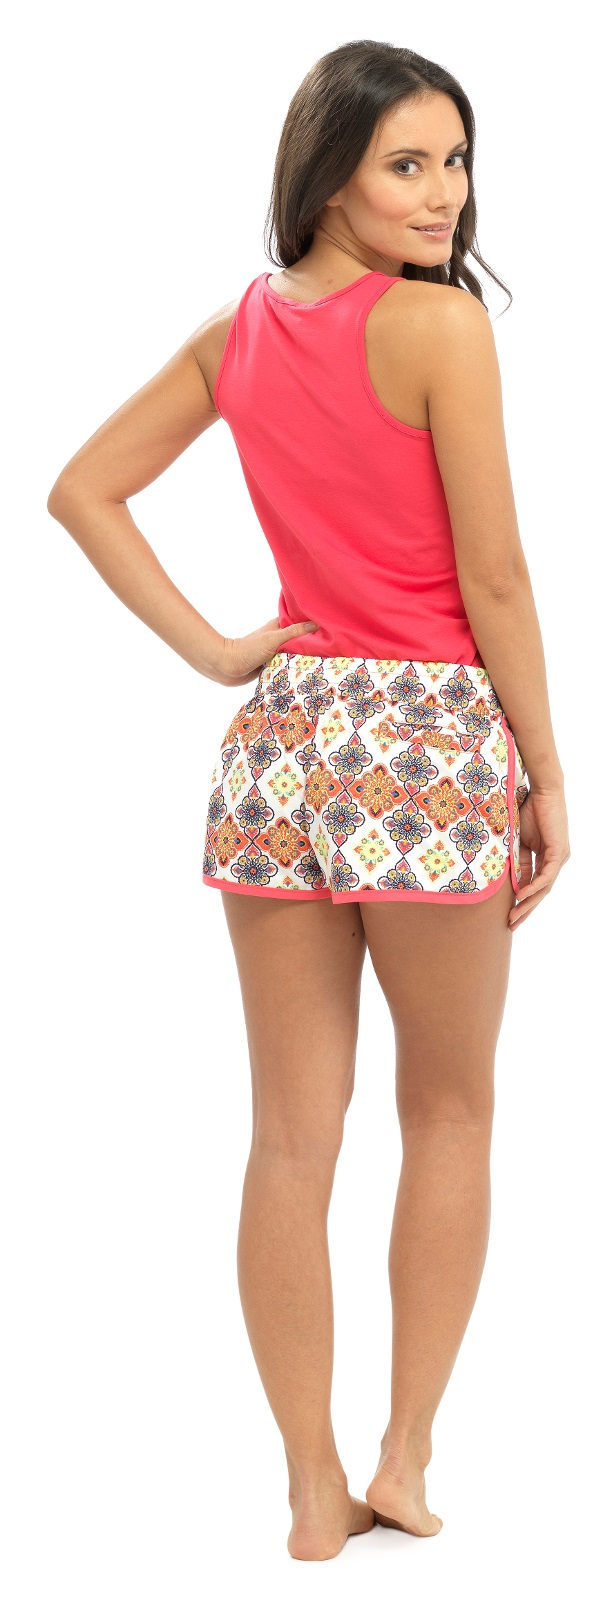 Find great deals on eBay for women beach shorts. Shop with confidence.